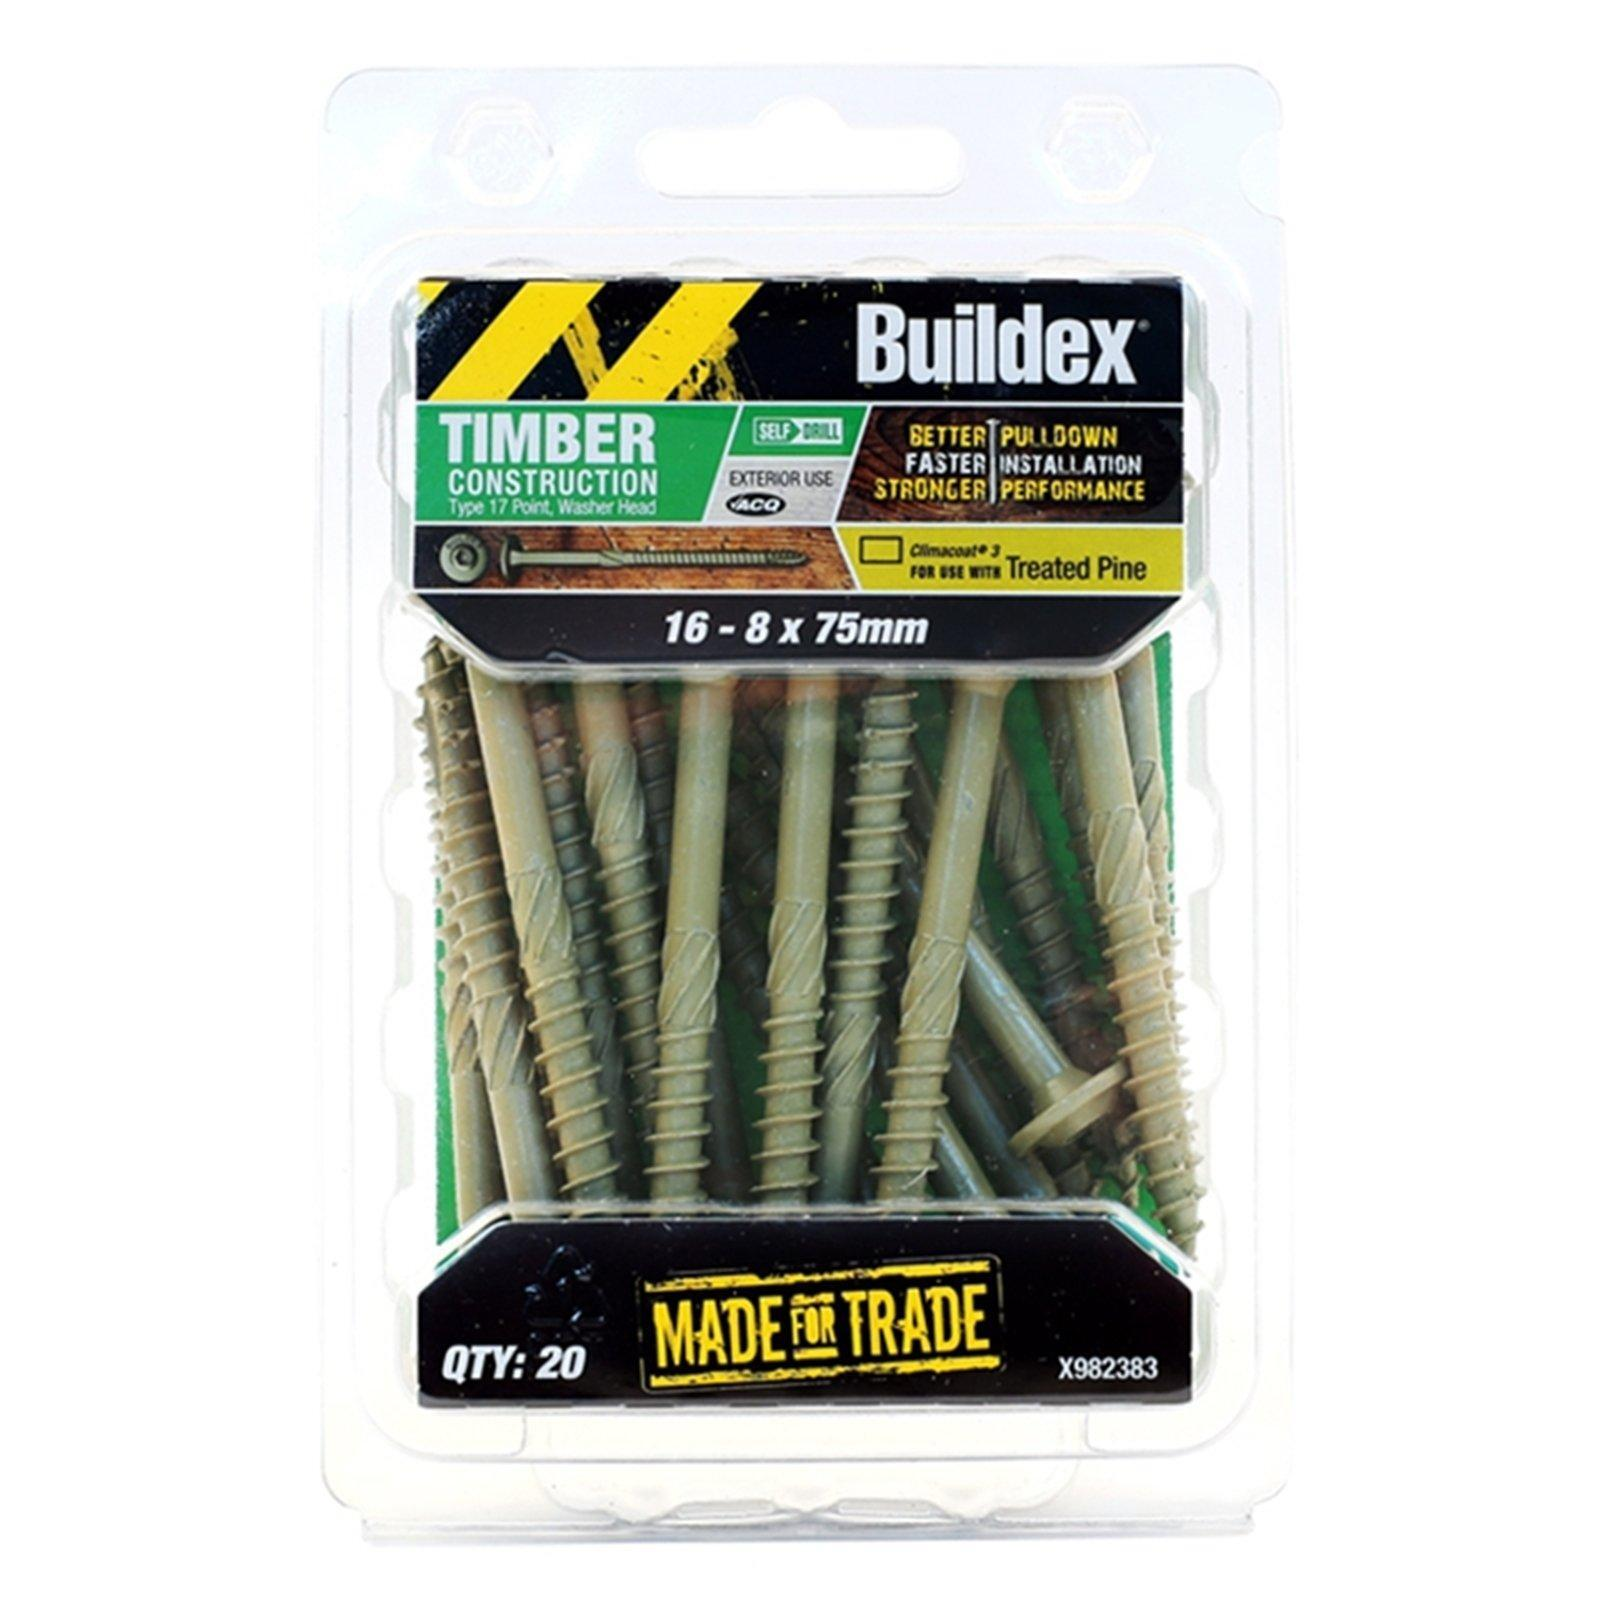 Buildex 16-8 x 75mm Climacoat Type 17 Timber Construction Screws - 20 Pack